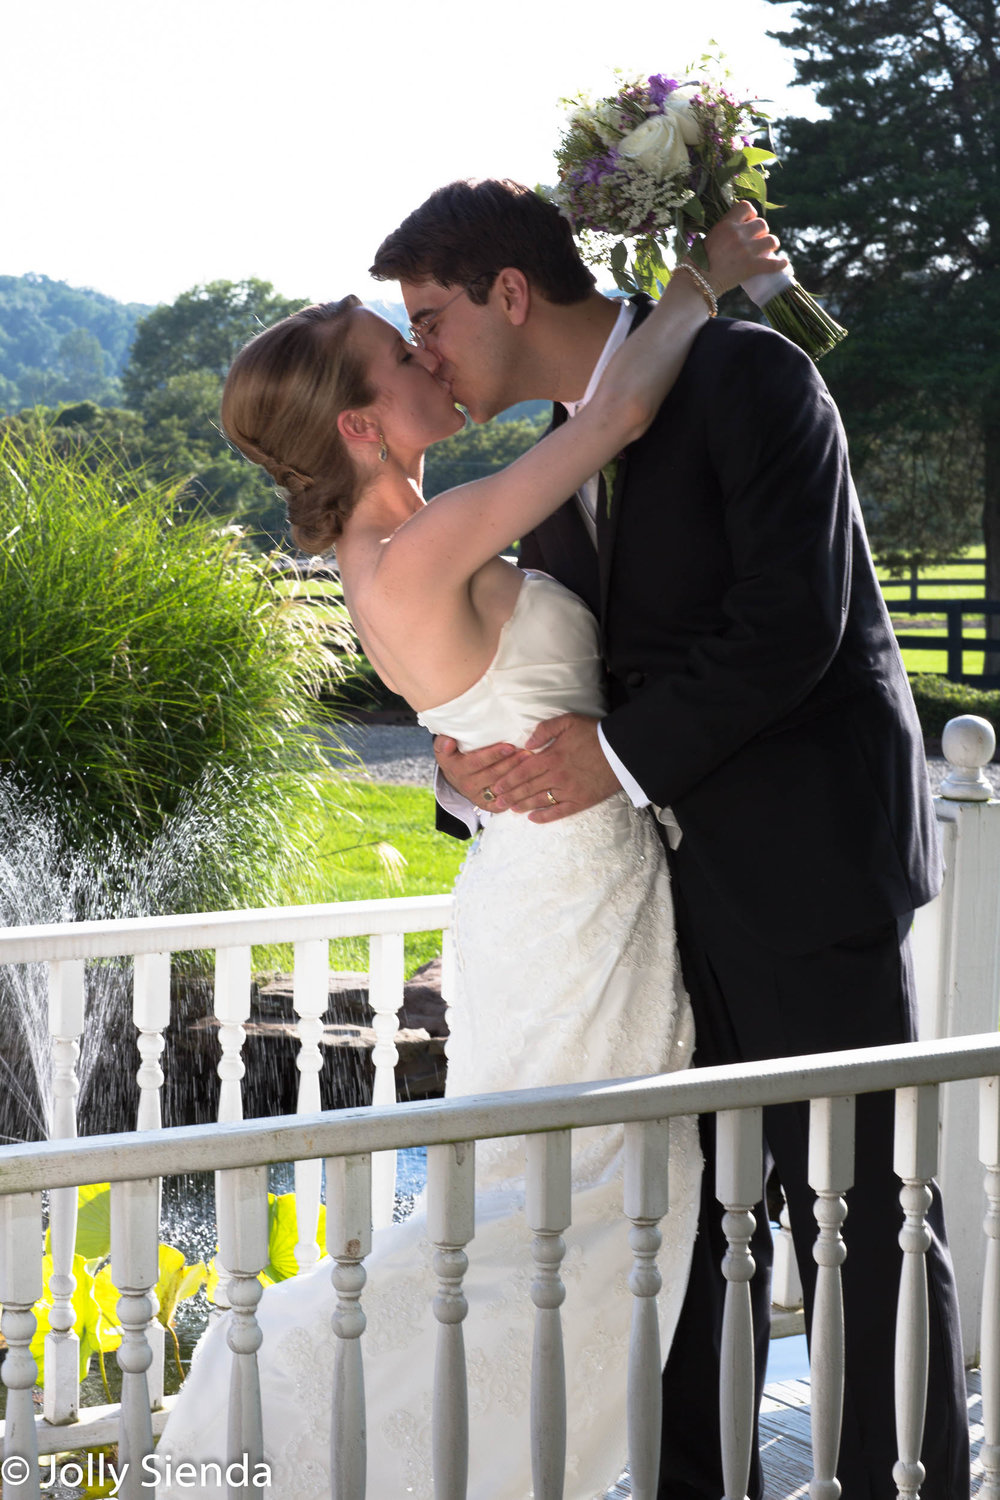 Groom kisses his bride on a bridge overlooking a pond - wedding